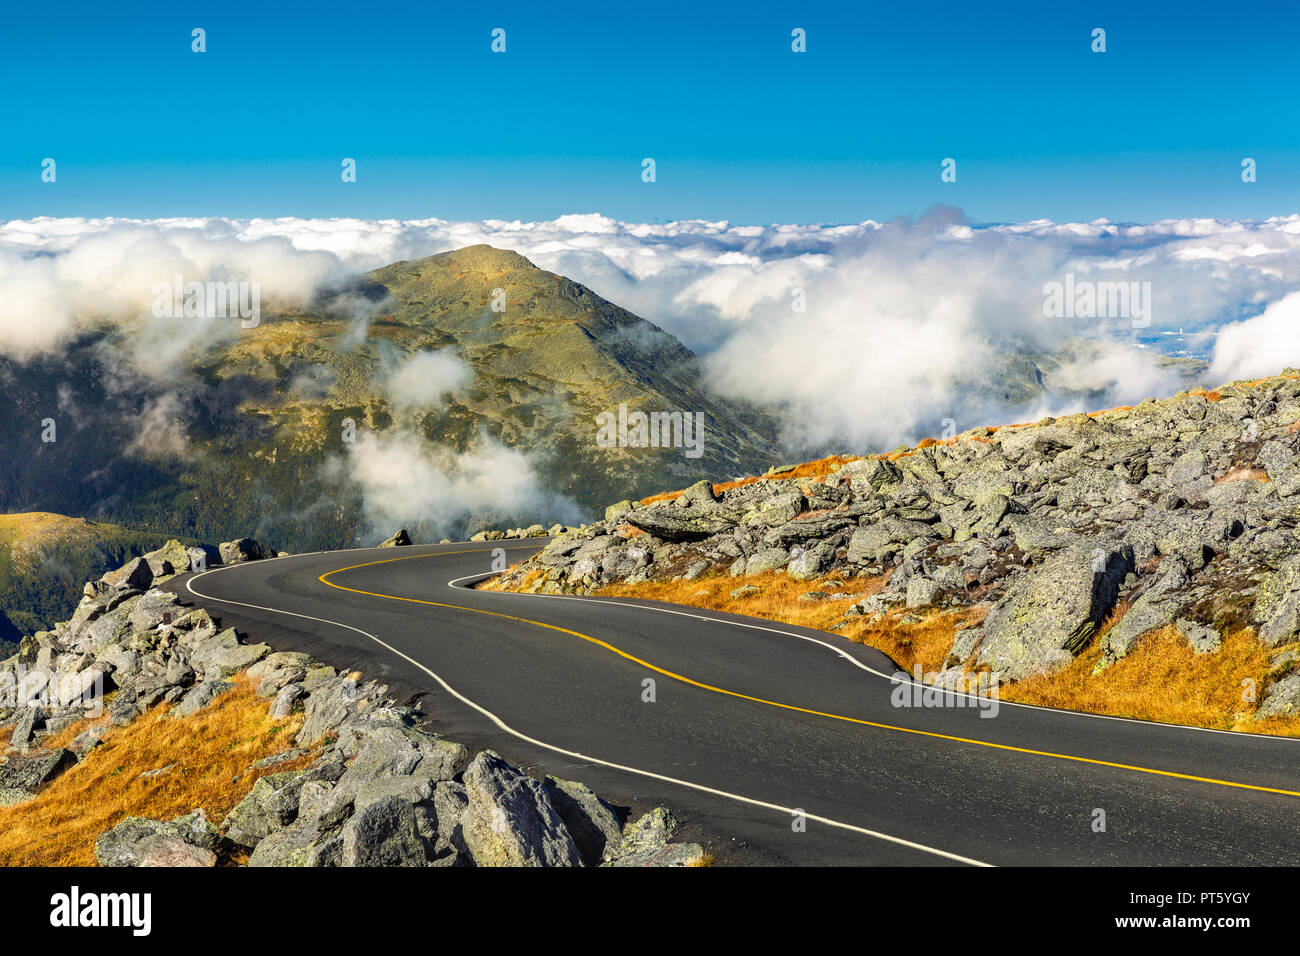 Winding road descending from Mount Washington, NH on a sunny autumn afternoon. Mount Jefferson peak stands above a thick layer of fluffy clouds. - Stock Image